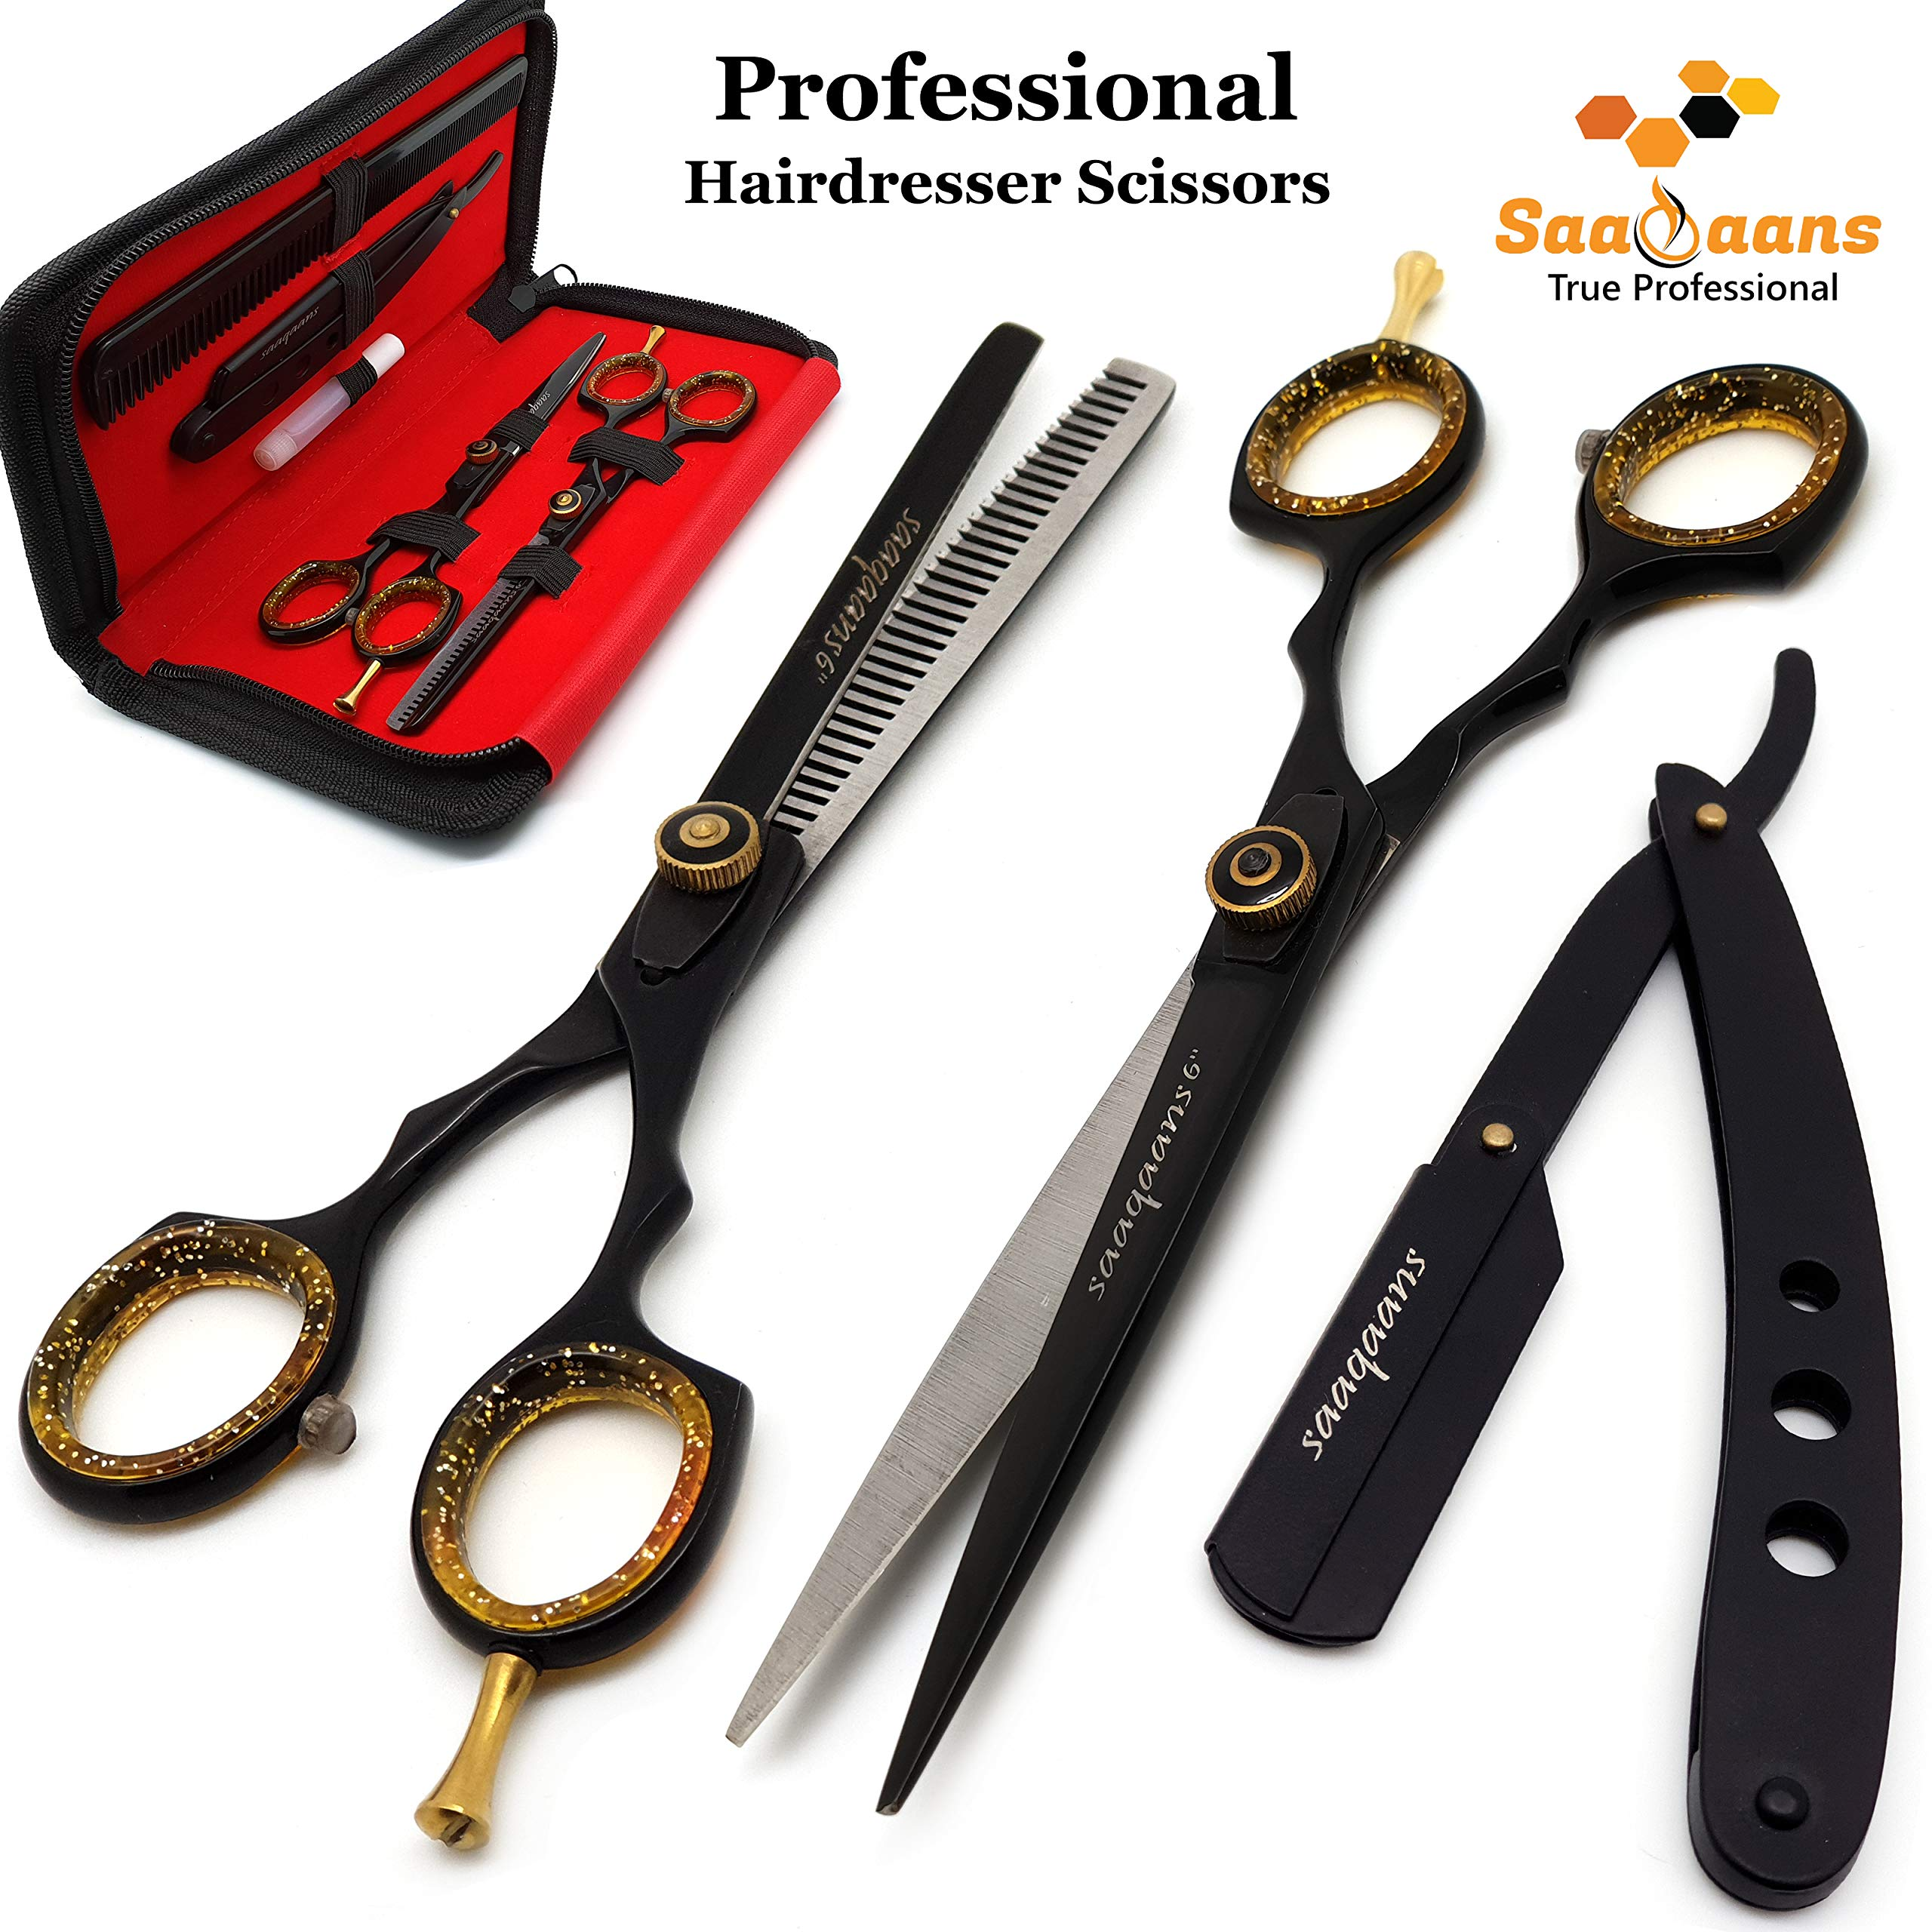 Saaqaans QSS-06 Professional Hair Cutting Scissors Set - Package includes Barber Hairdresser Scissor + Texture Thinning Shear + Straight Shaving Razor + 10 x Blades in Stylish Case/Pouch (Black) by Saaqaans